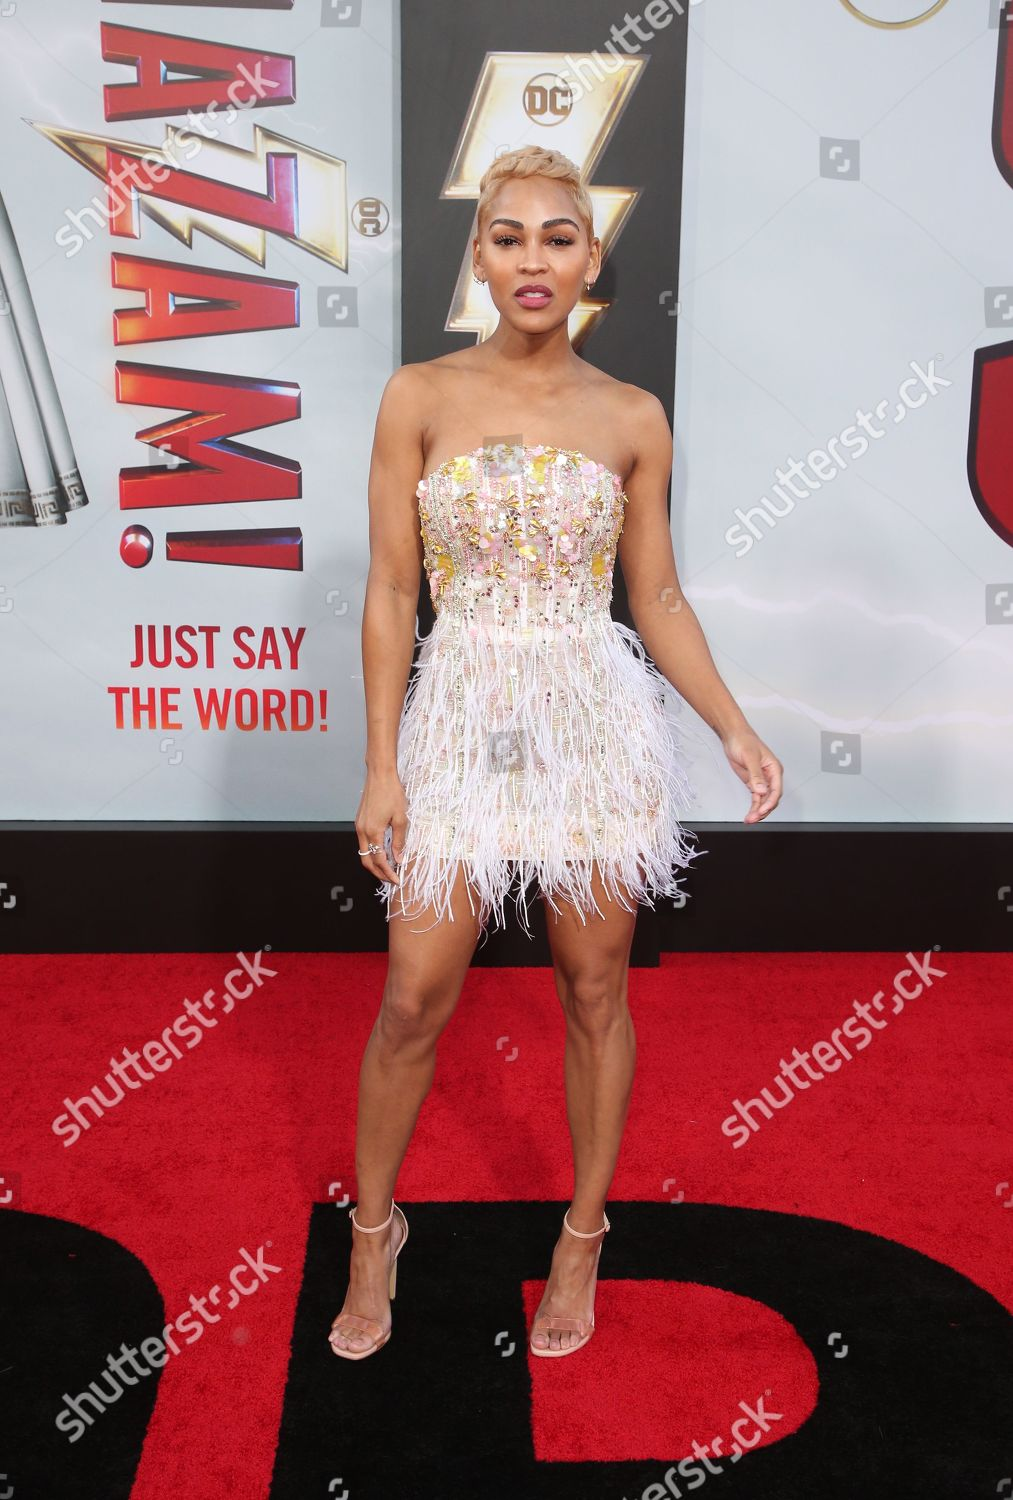 272b05aba 'Shazam' Film Premiere, Arrivals, TCL Chinese Theatre, Los Angeles, USA  Stock Image by MediaPunch for editorial use, Mar 28, 2019